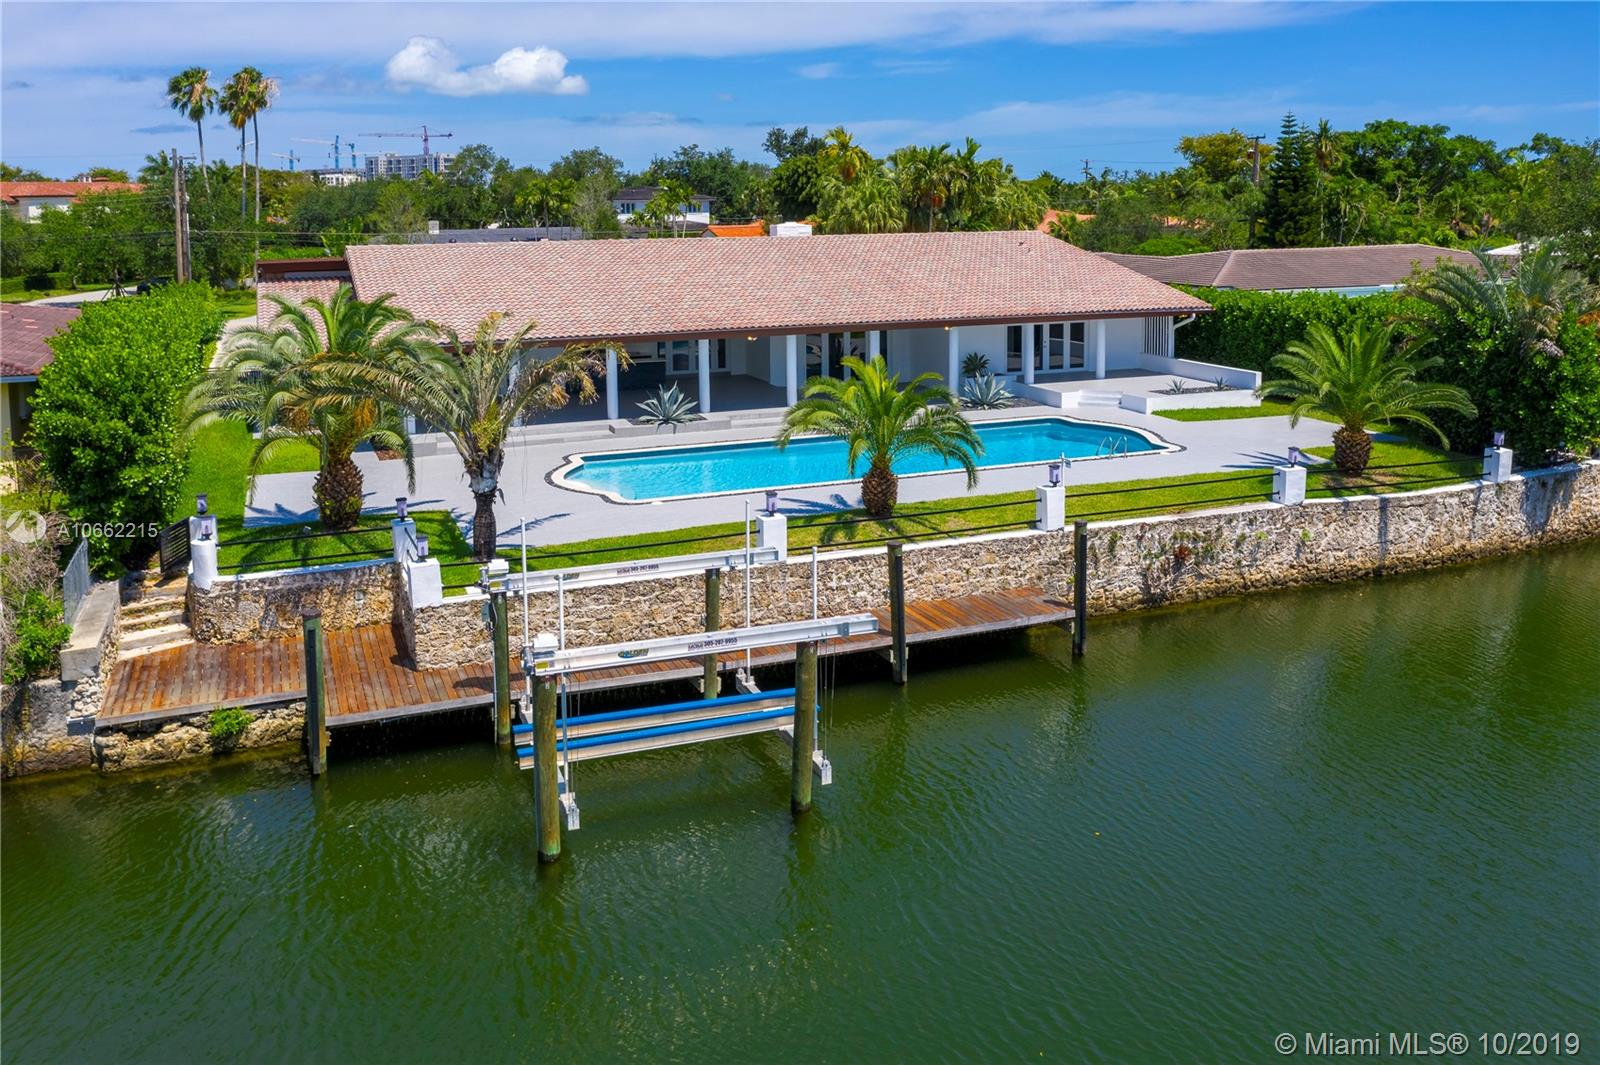 4706  Granada Blvd  For Sale A10662215, FL